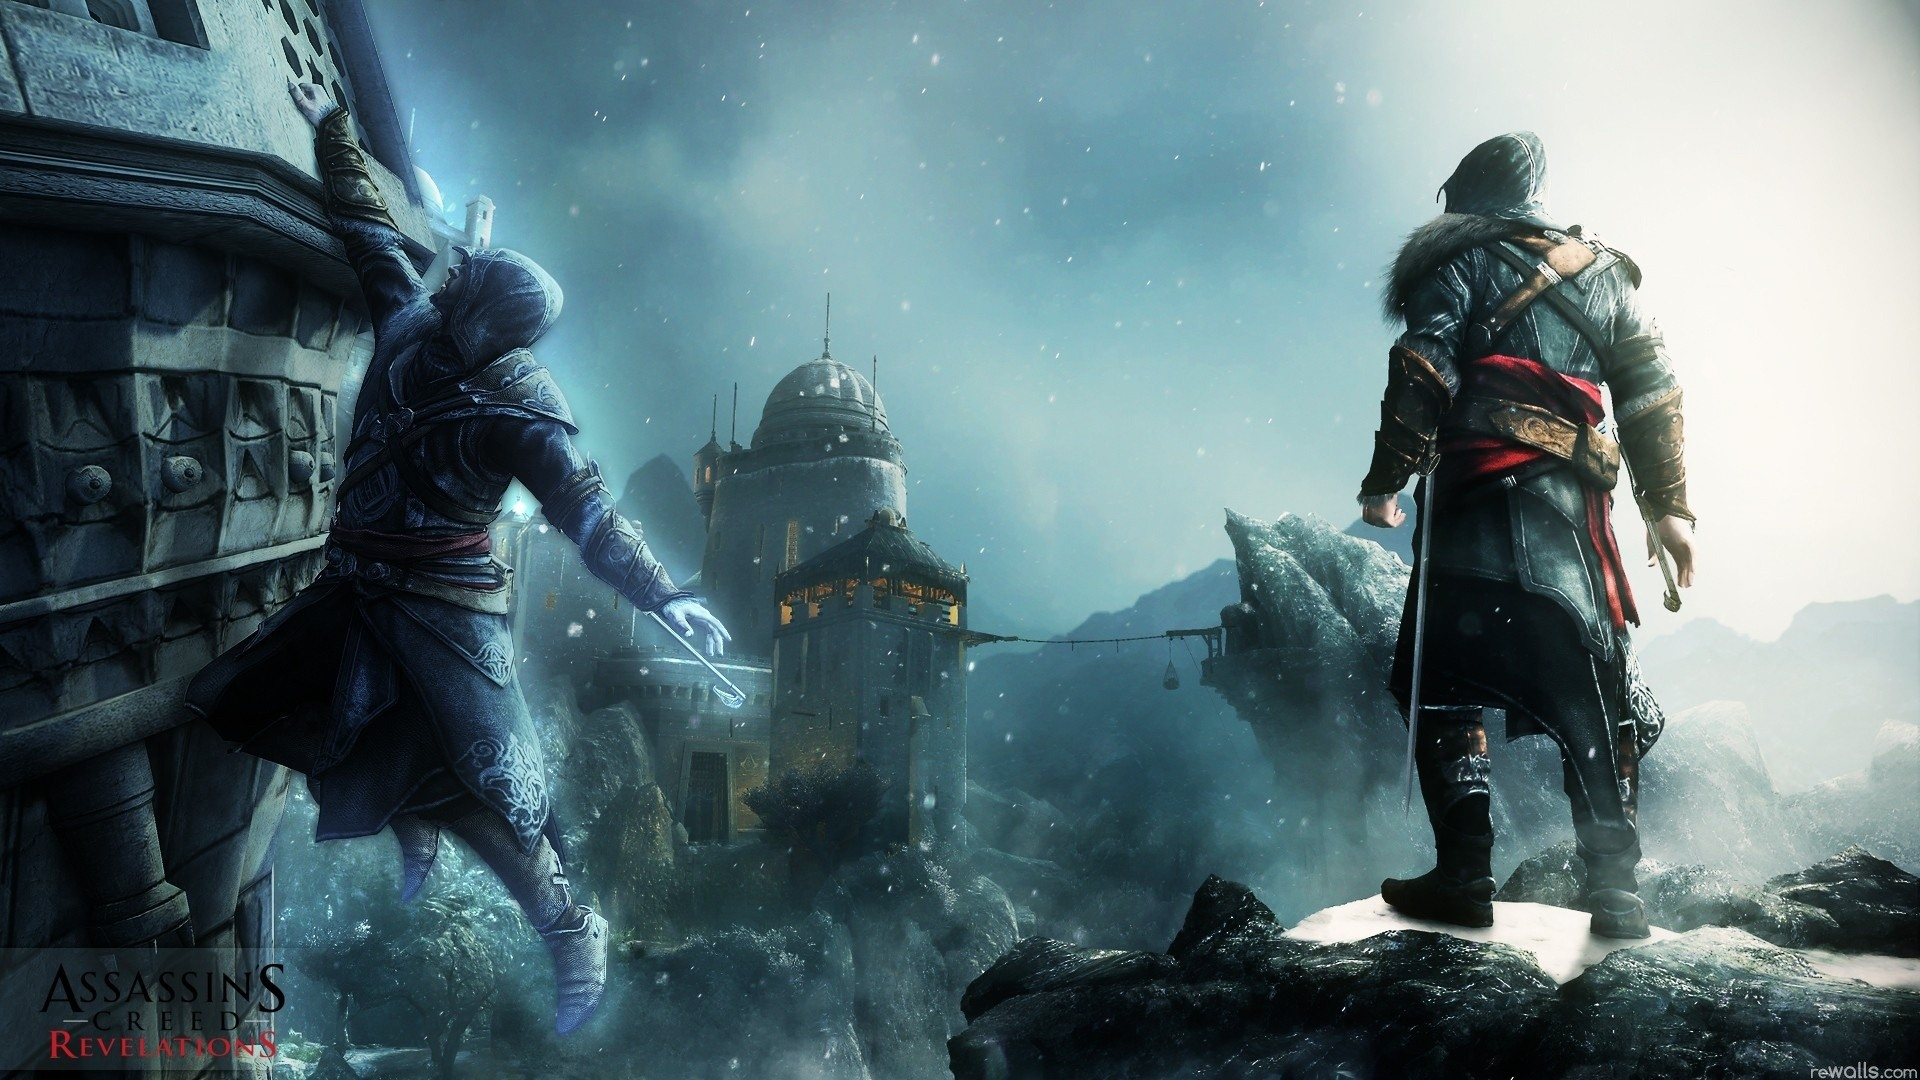 Assassins Creed Revelations HD Wallpapers 28 Photos high quality 1920x1080